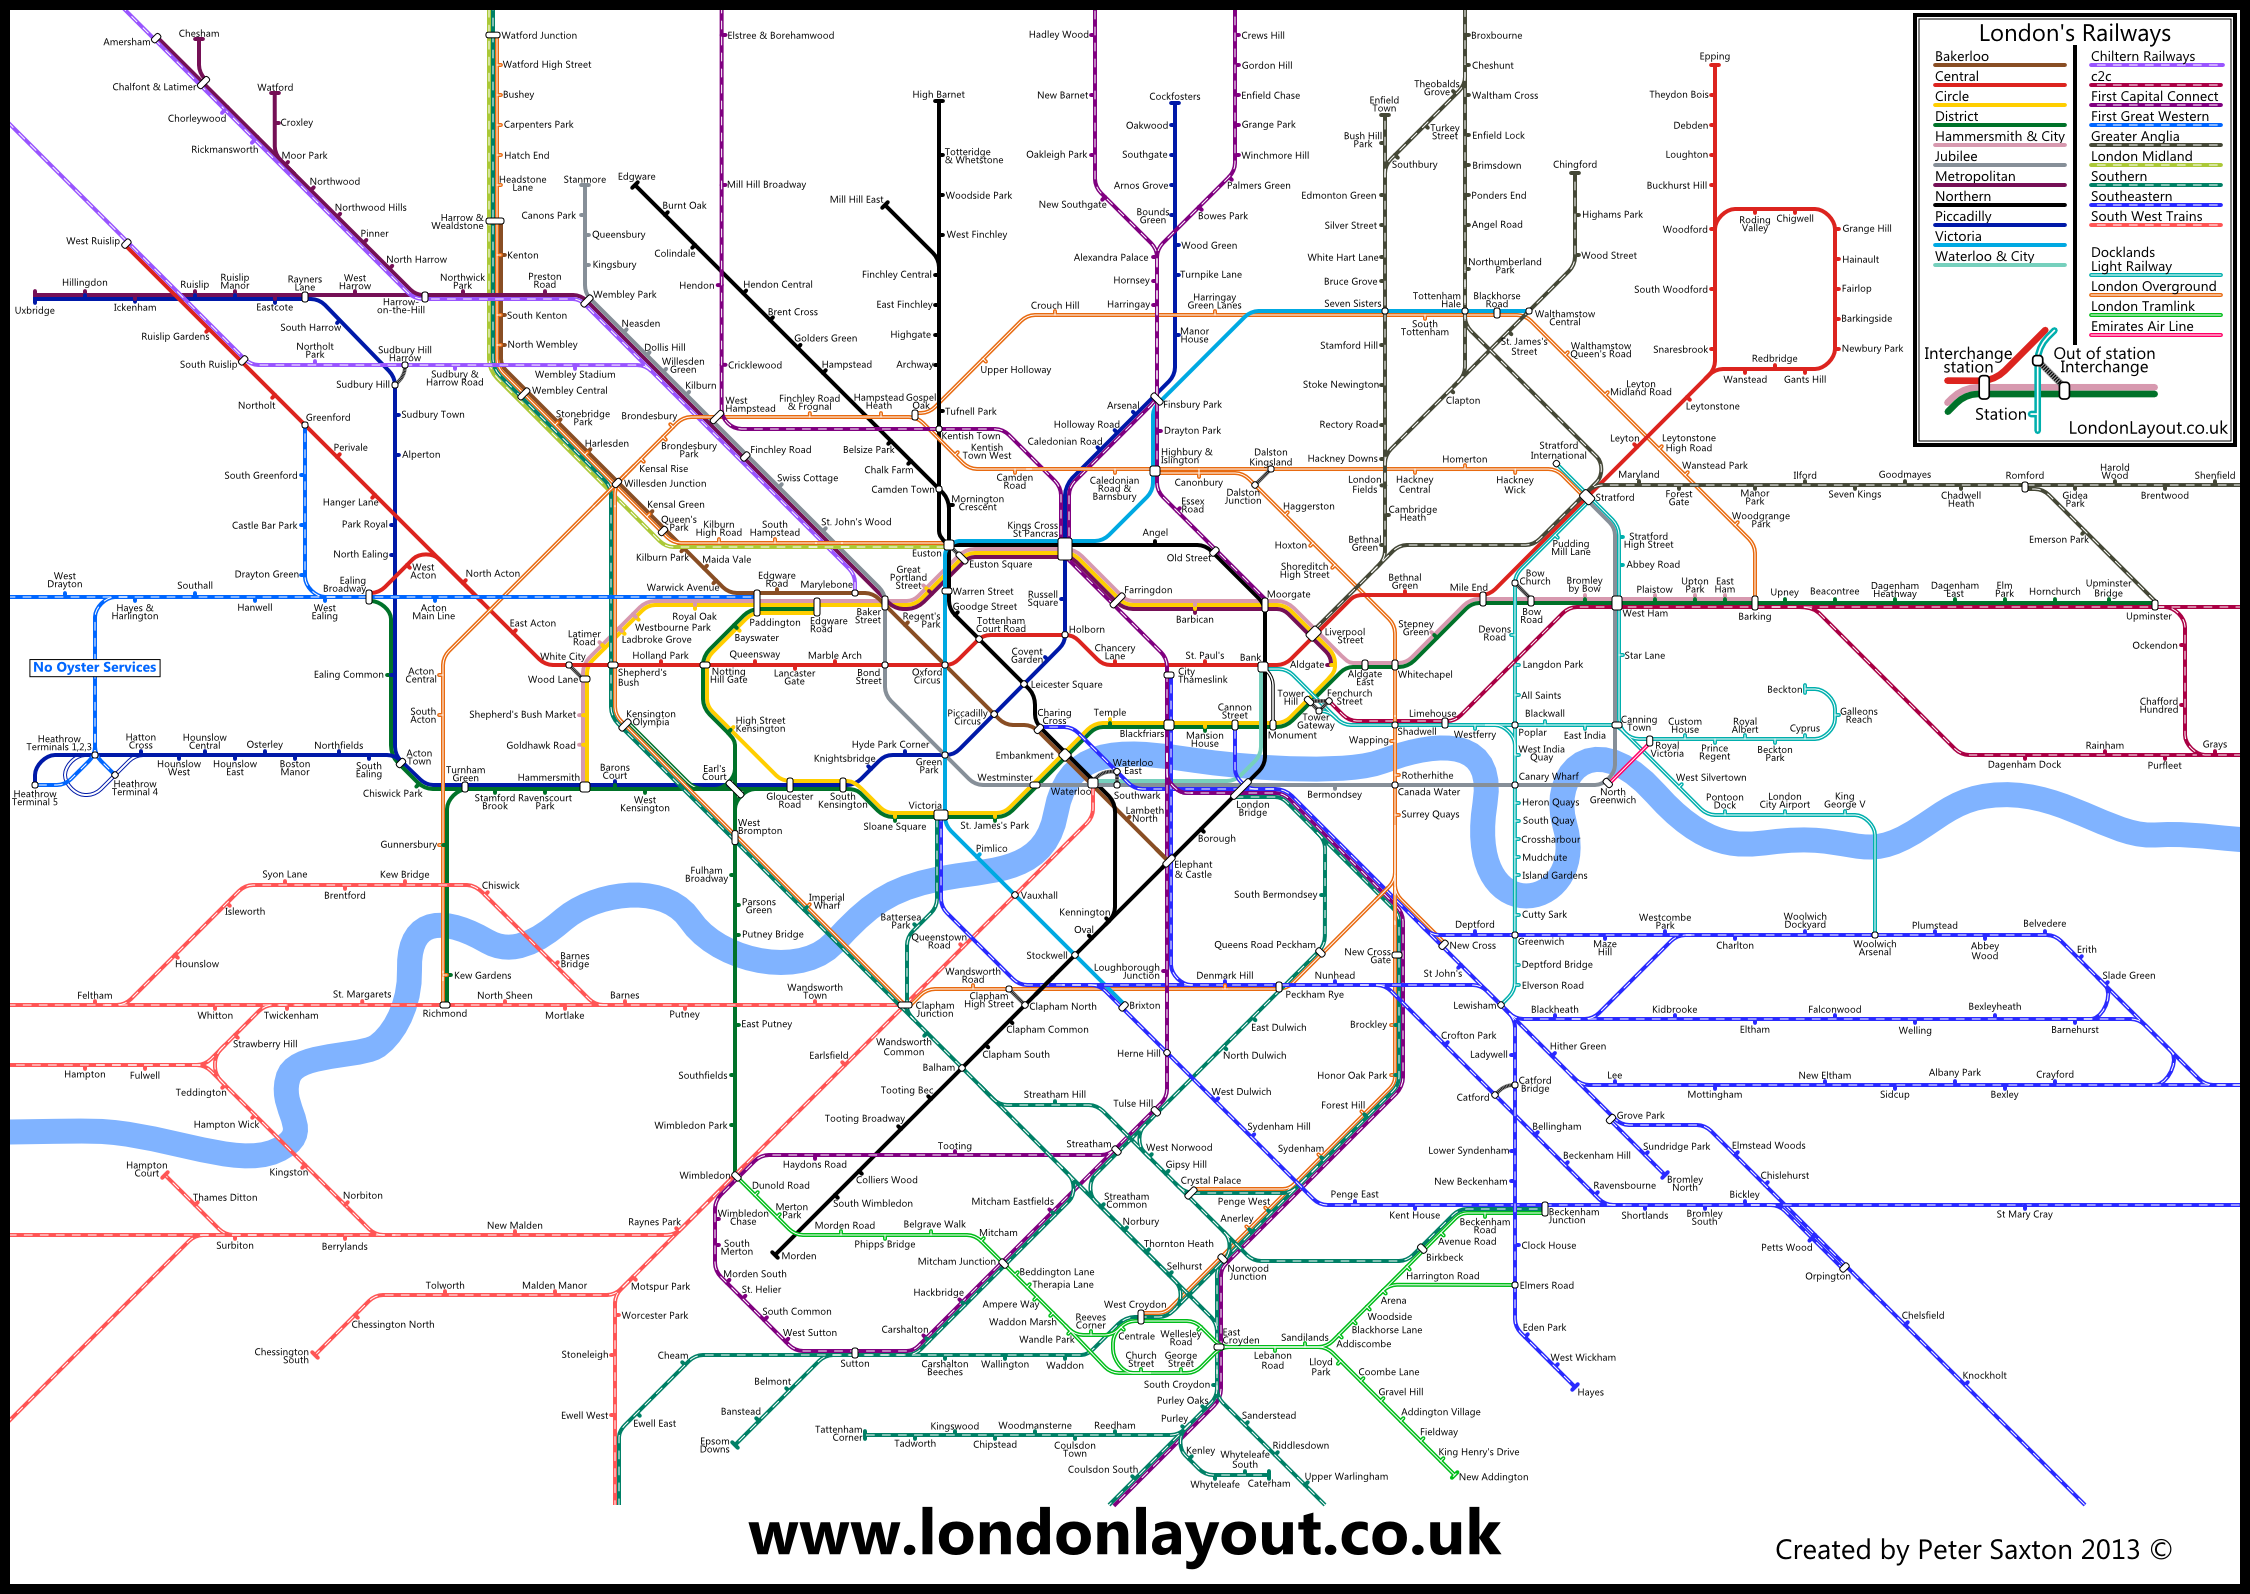 London Tube and Rail maps RAIL MAPS